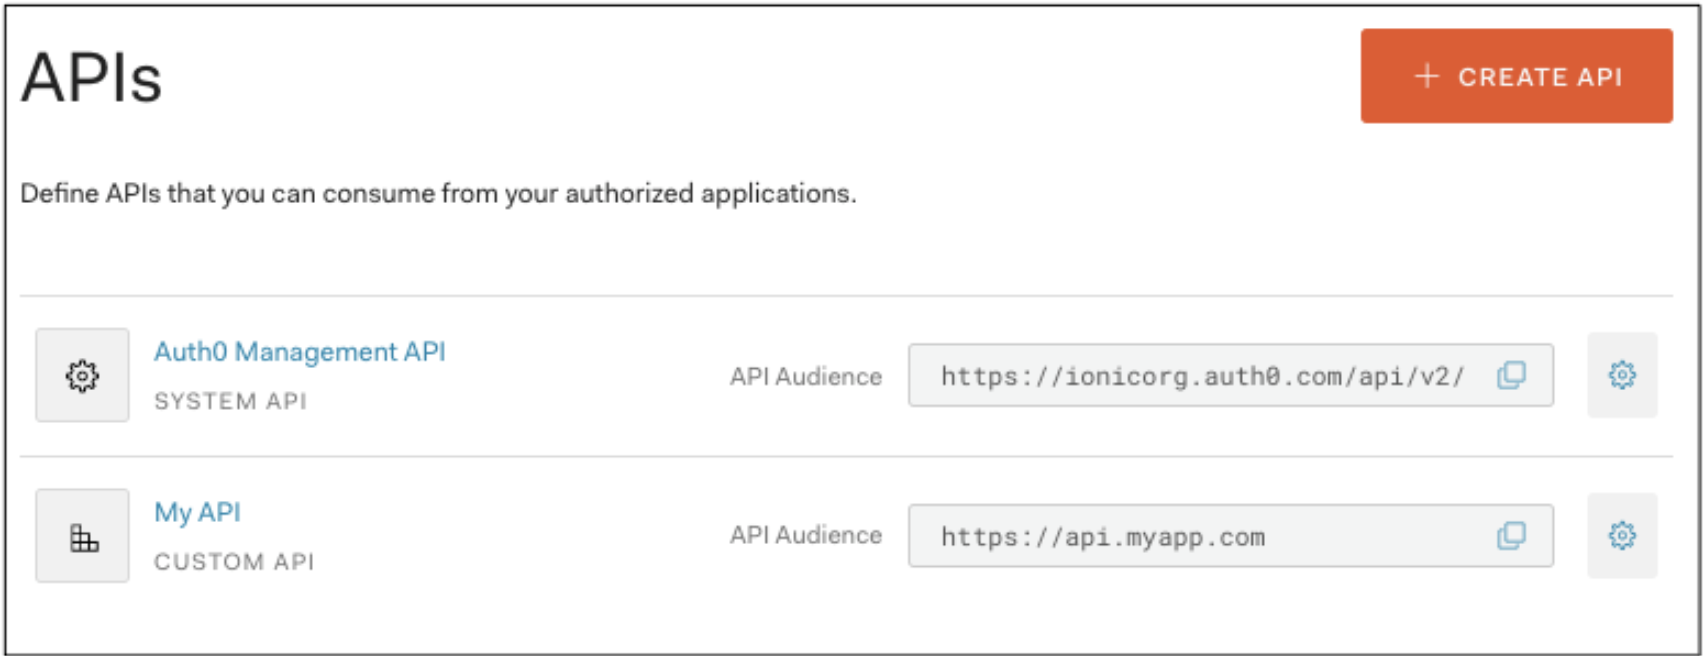 Finding the API Audience field